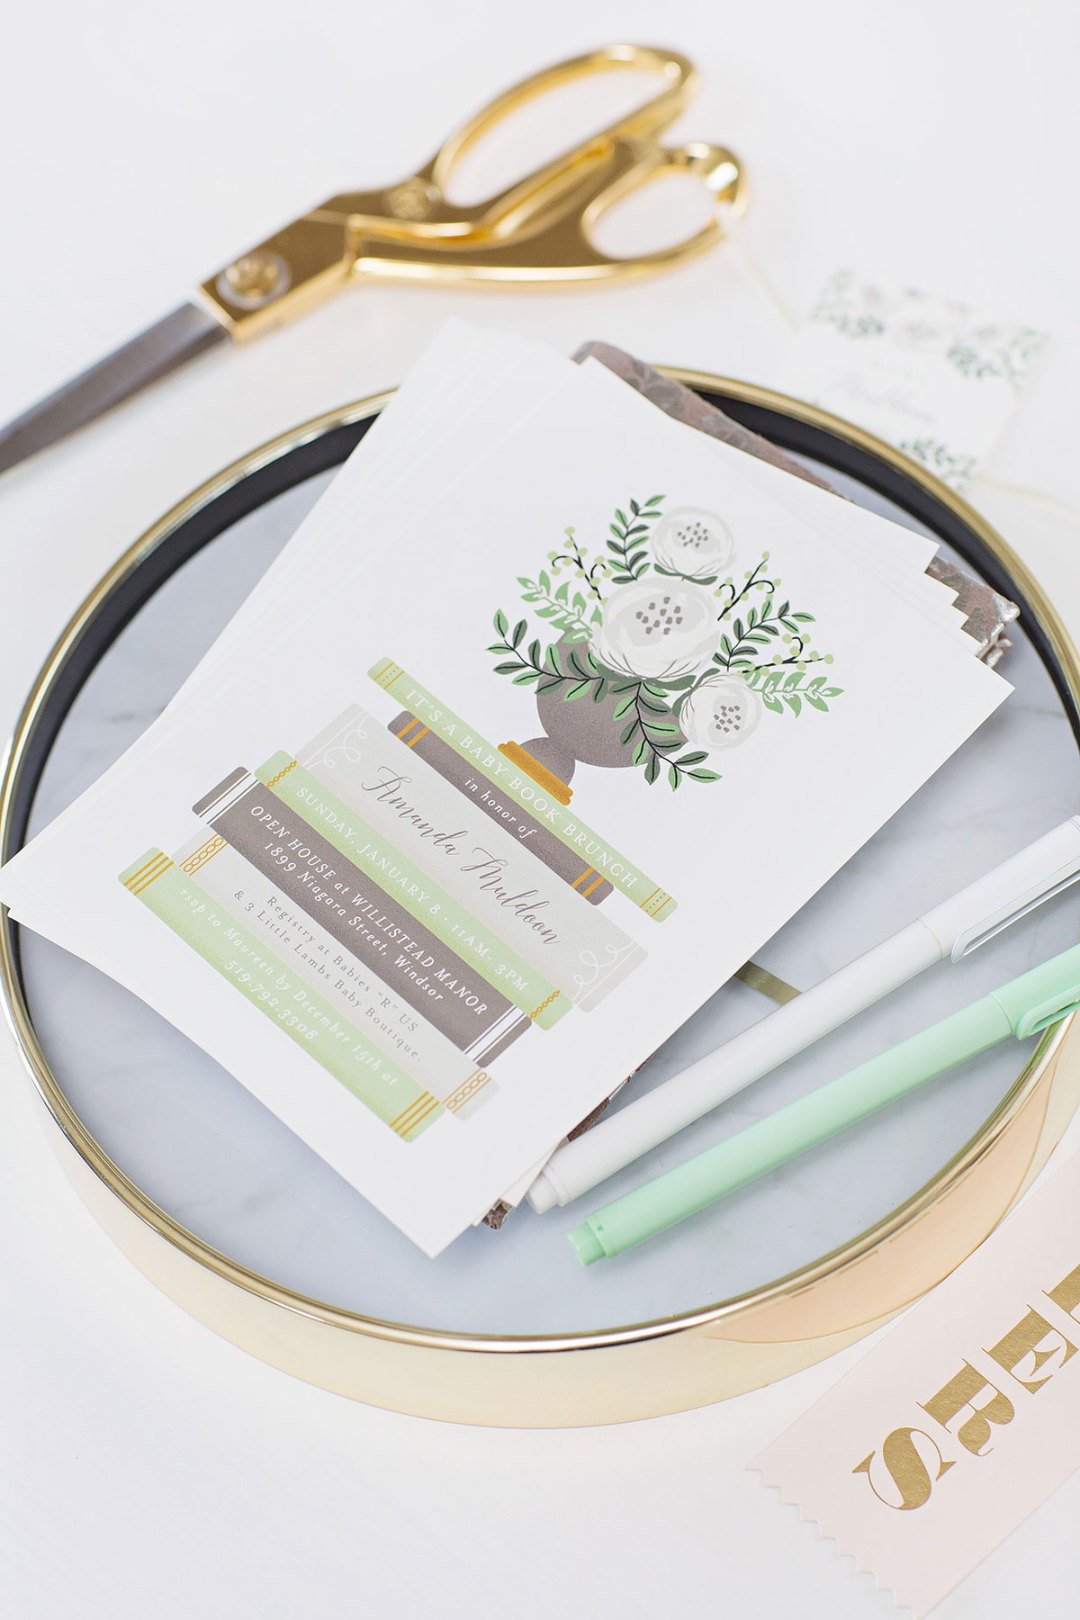 rose-city-style-guide-minted-shower-invites-windsor-windsor-toronto-blogger-eryn-shea-photography-01